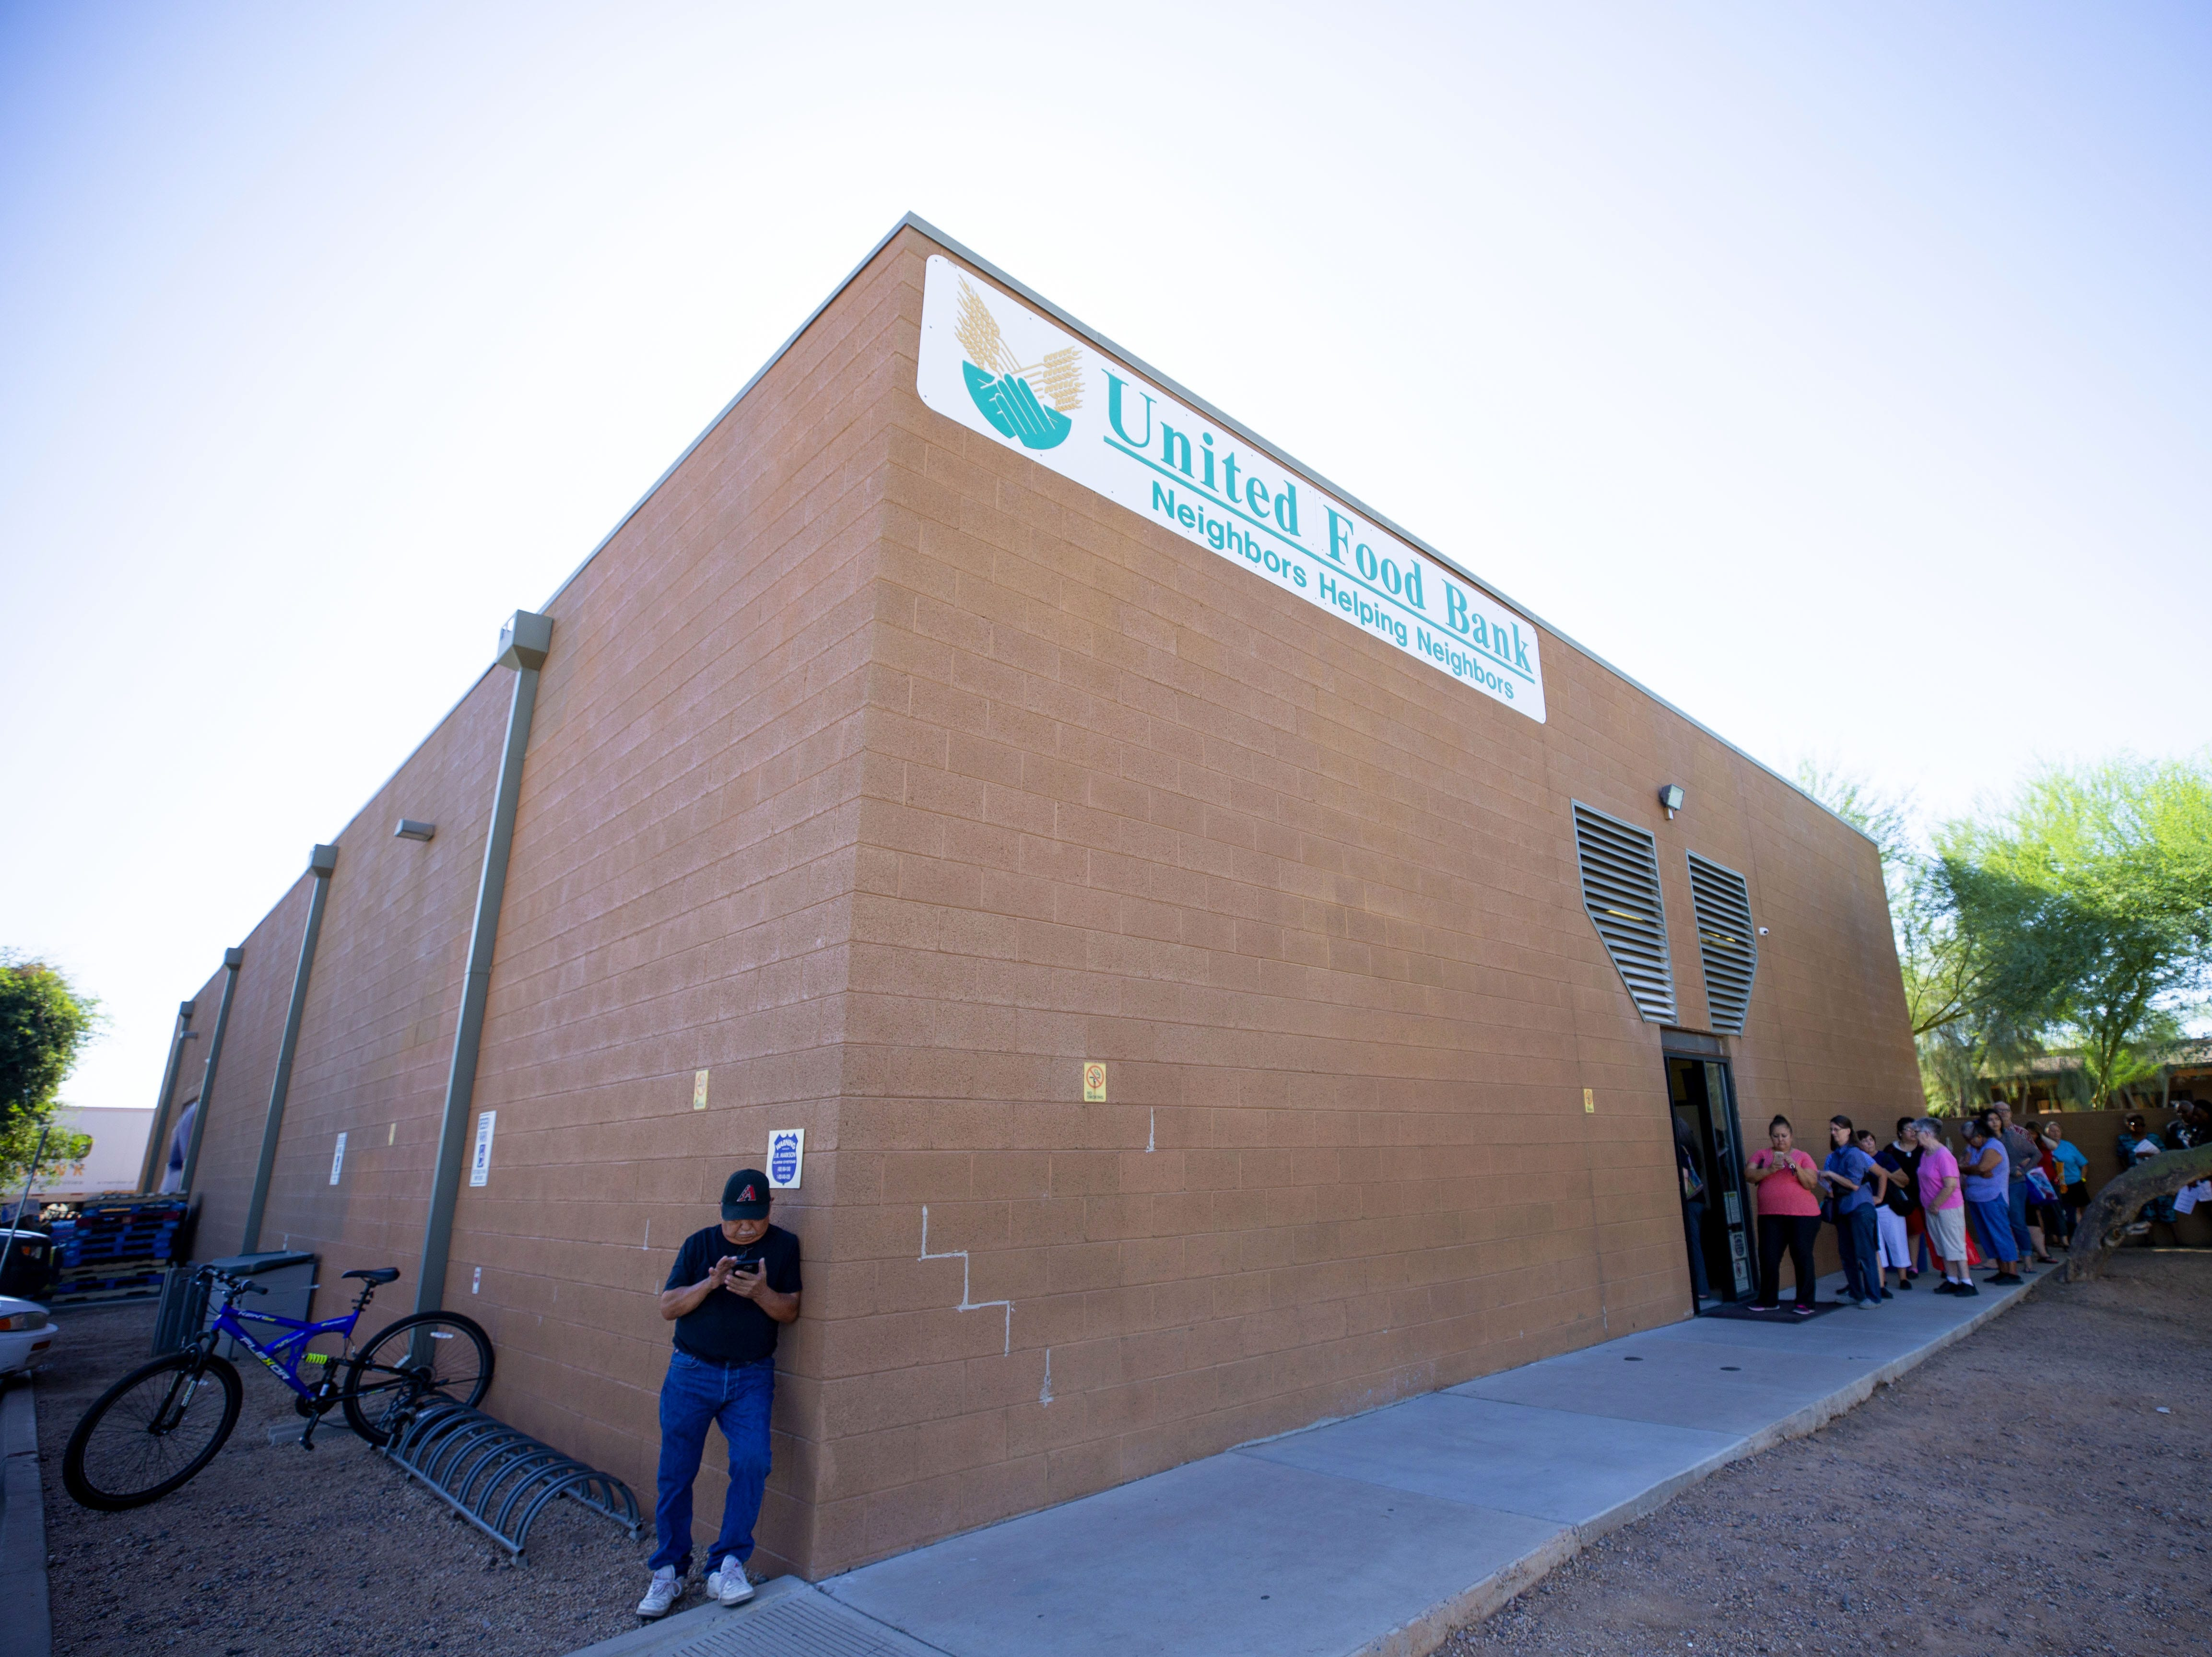 People wait in line at the United Food Bank in Mesa for food distribution on September 28, 2018.